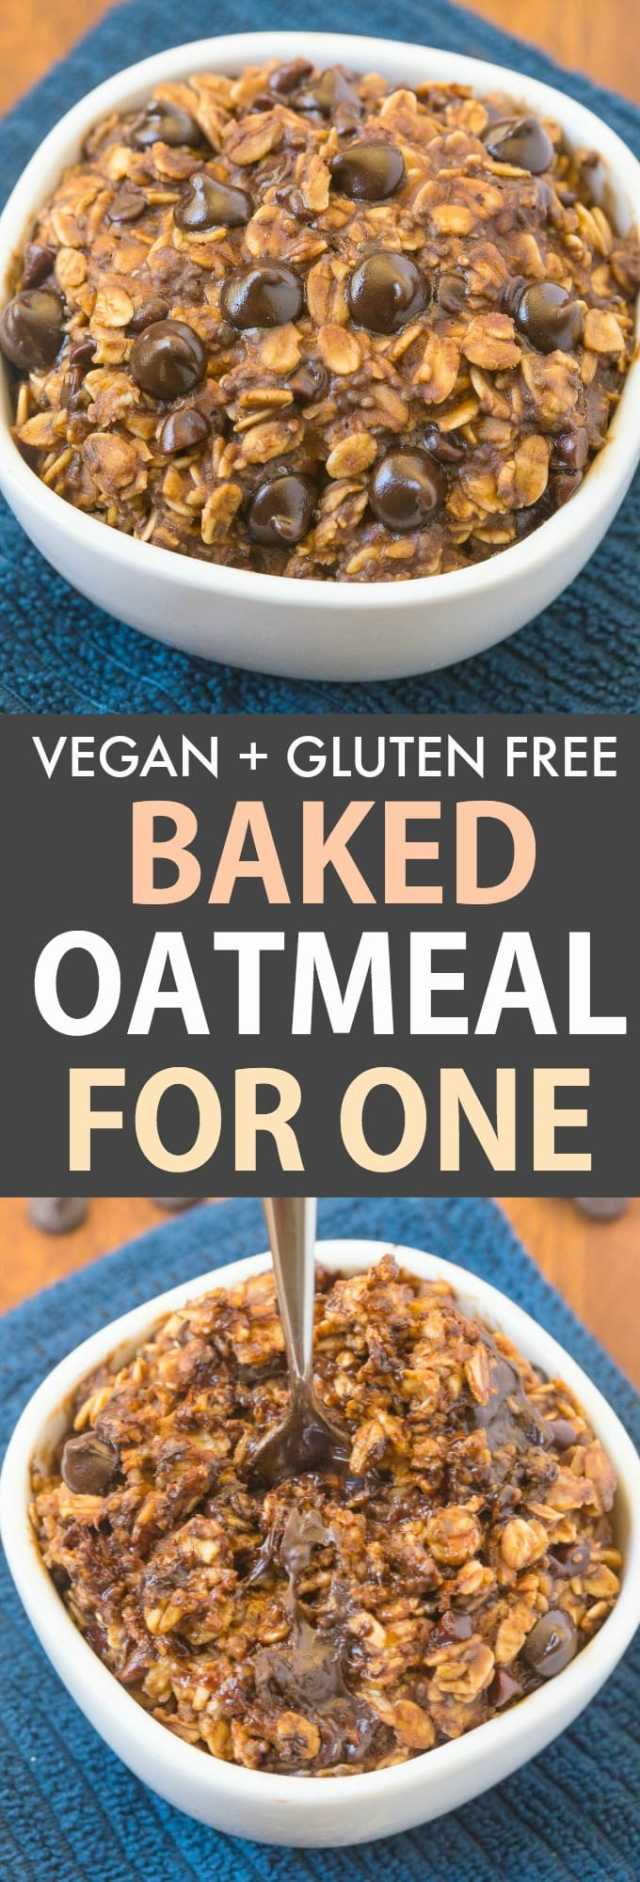 The BEST baked oatmeal recipe